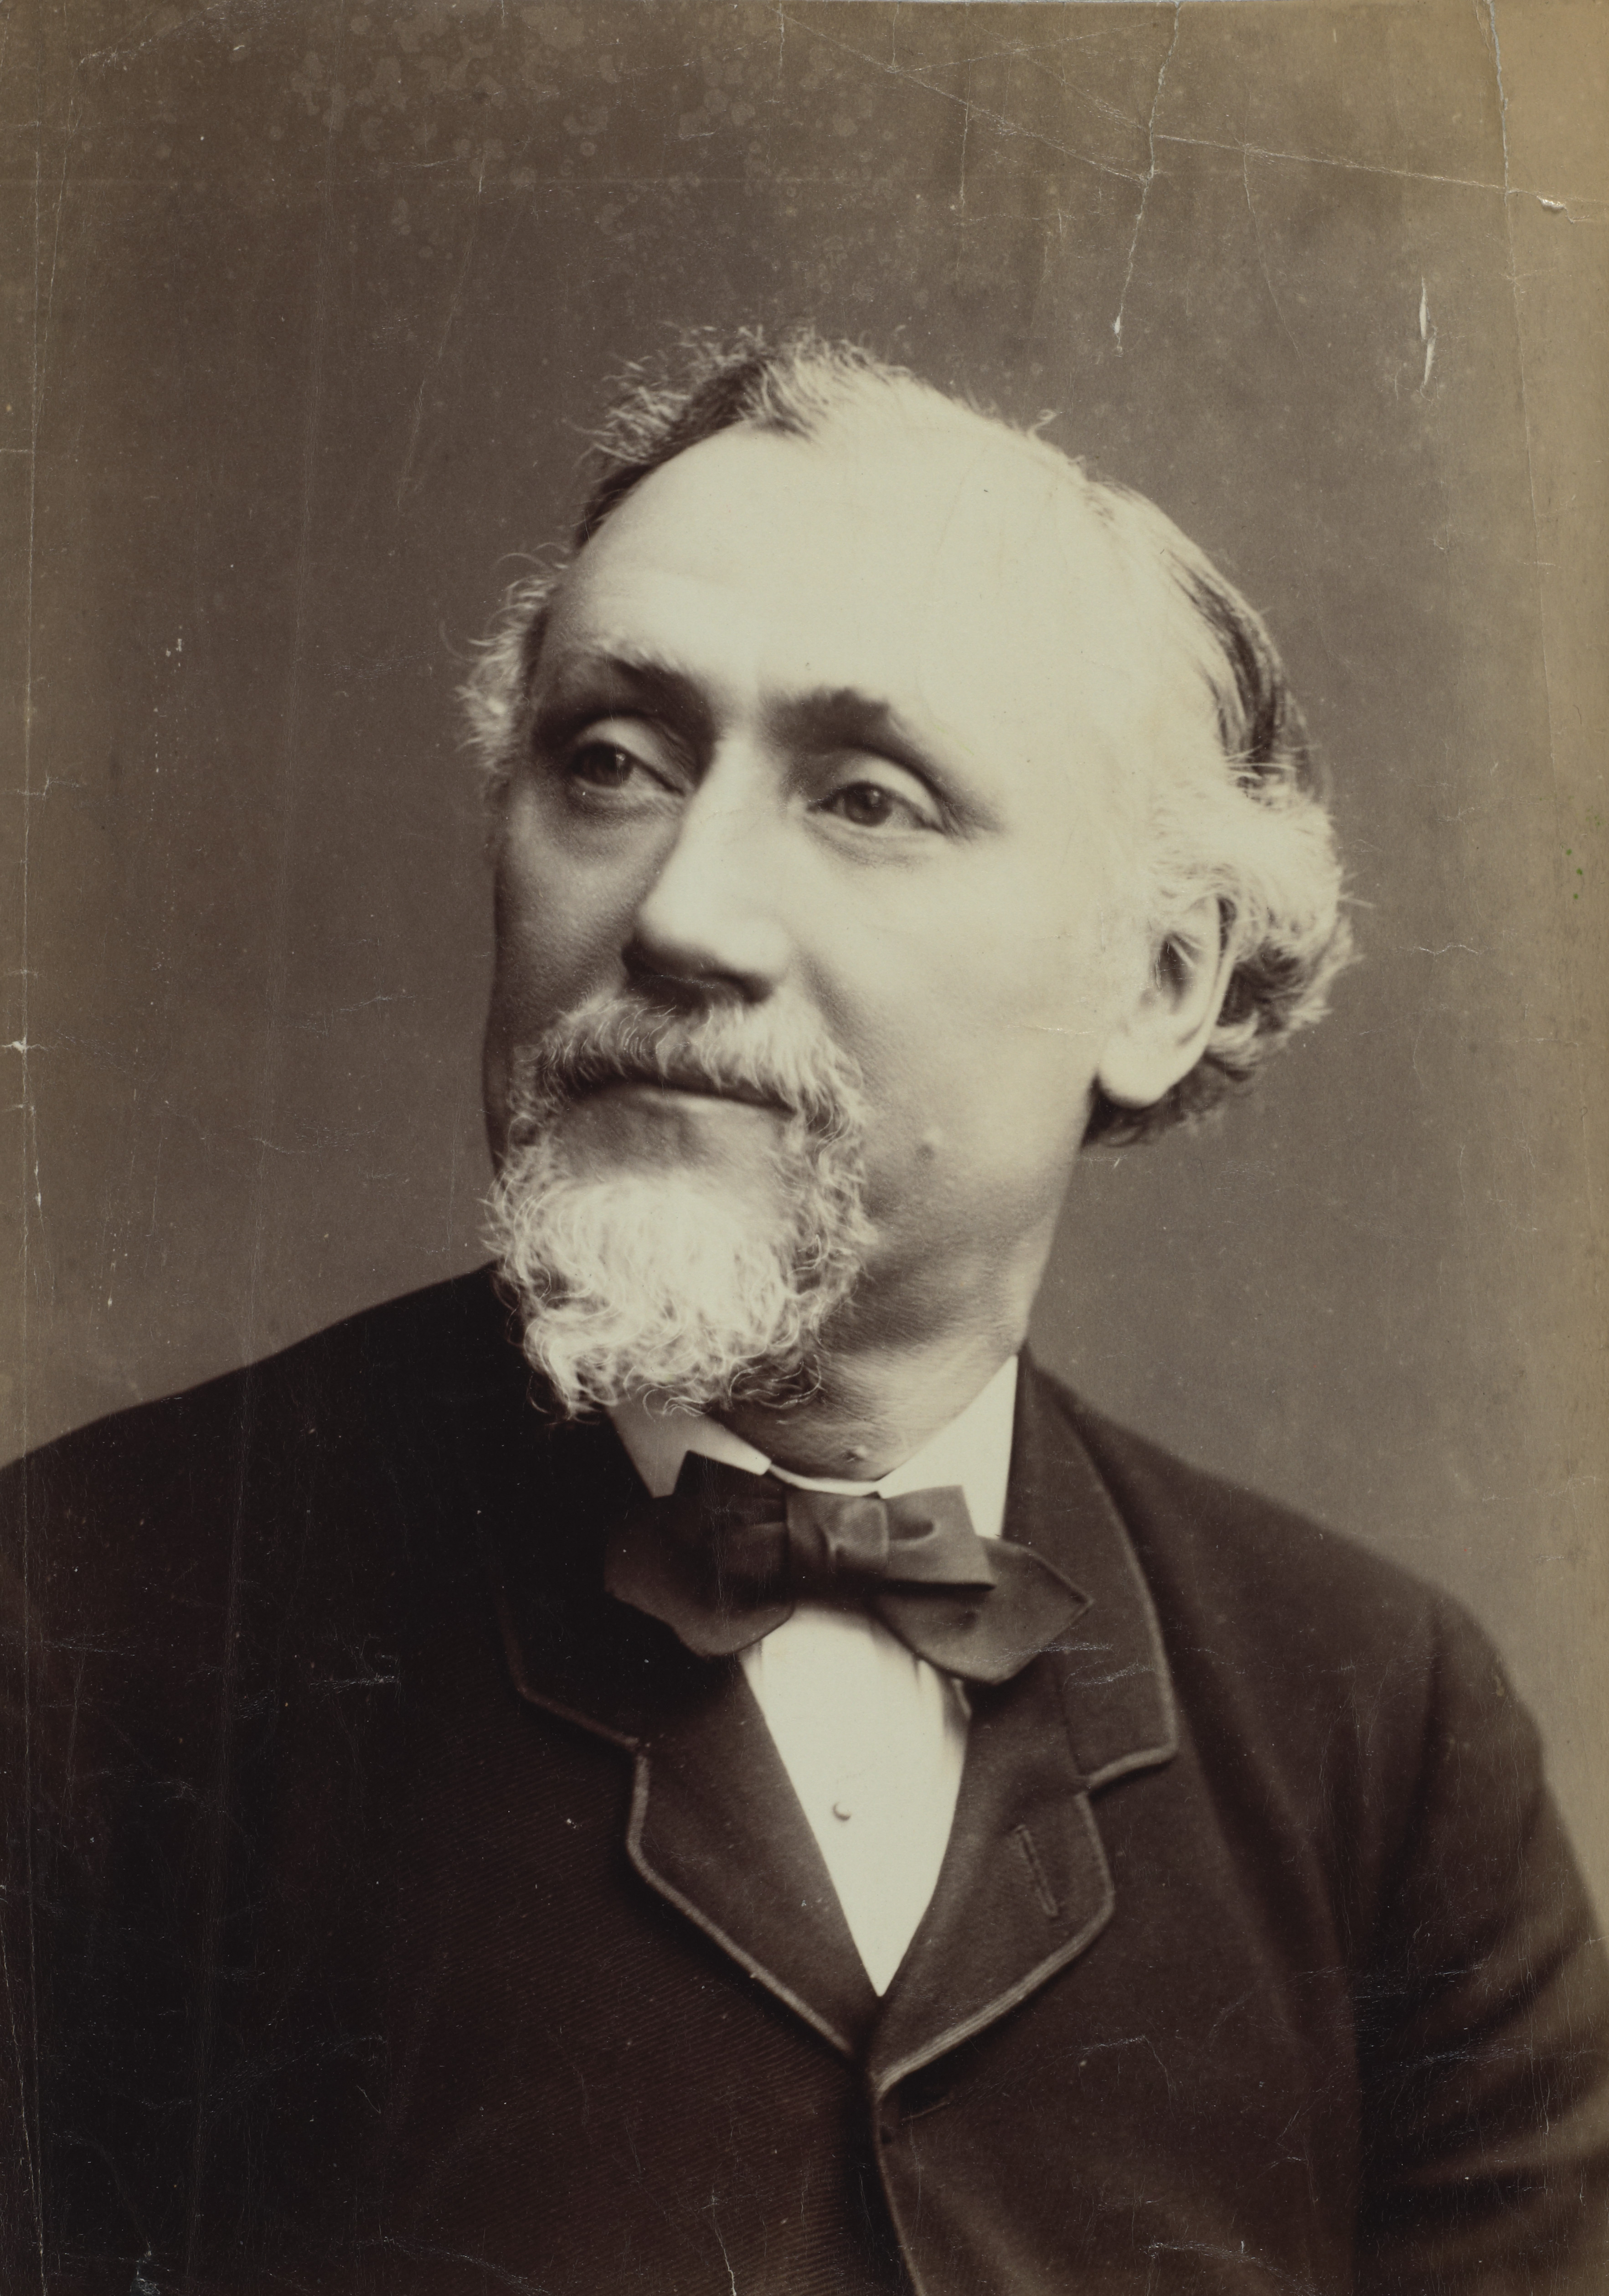 Image of Alfred Henry Burton from Wikidata